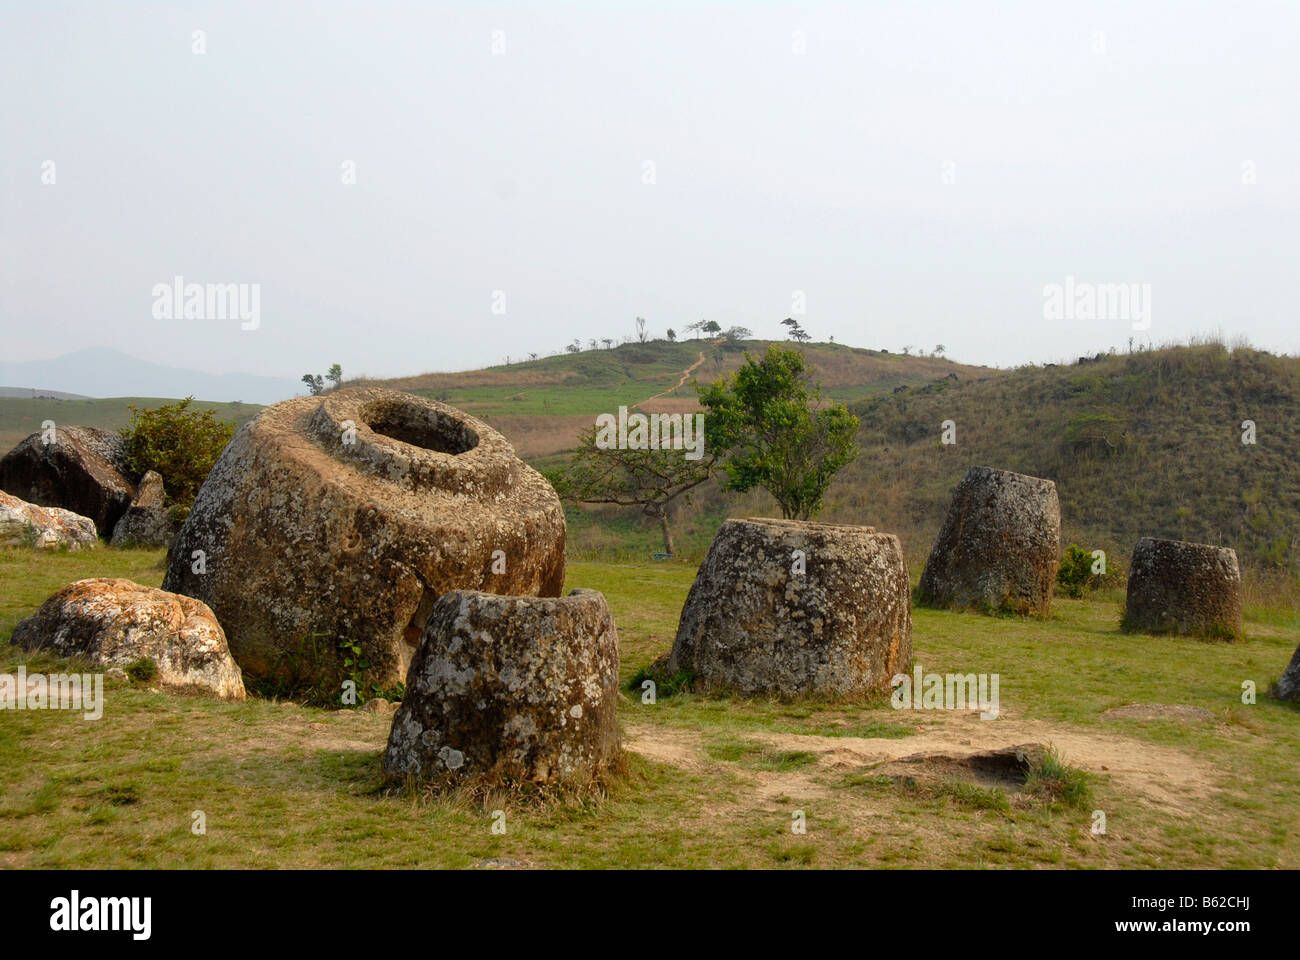 Numerous enormous jars, monoliths made of stone, Plain of Jars, Xieng Khuang Province, Laos, Southeast Asia - Stock Image